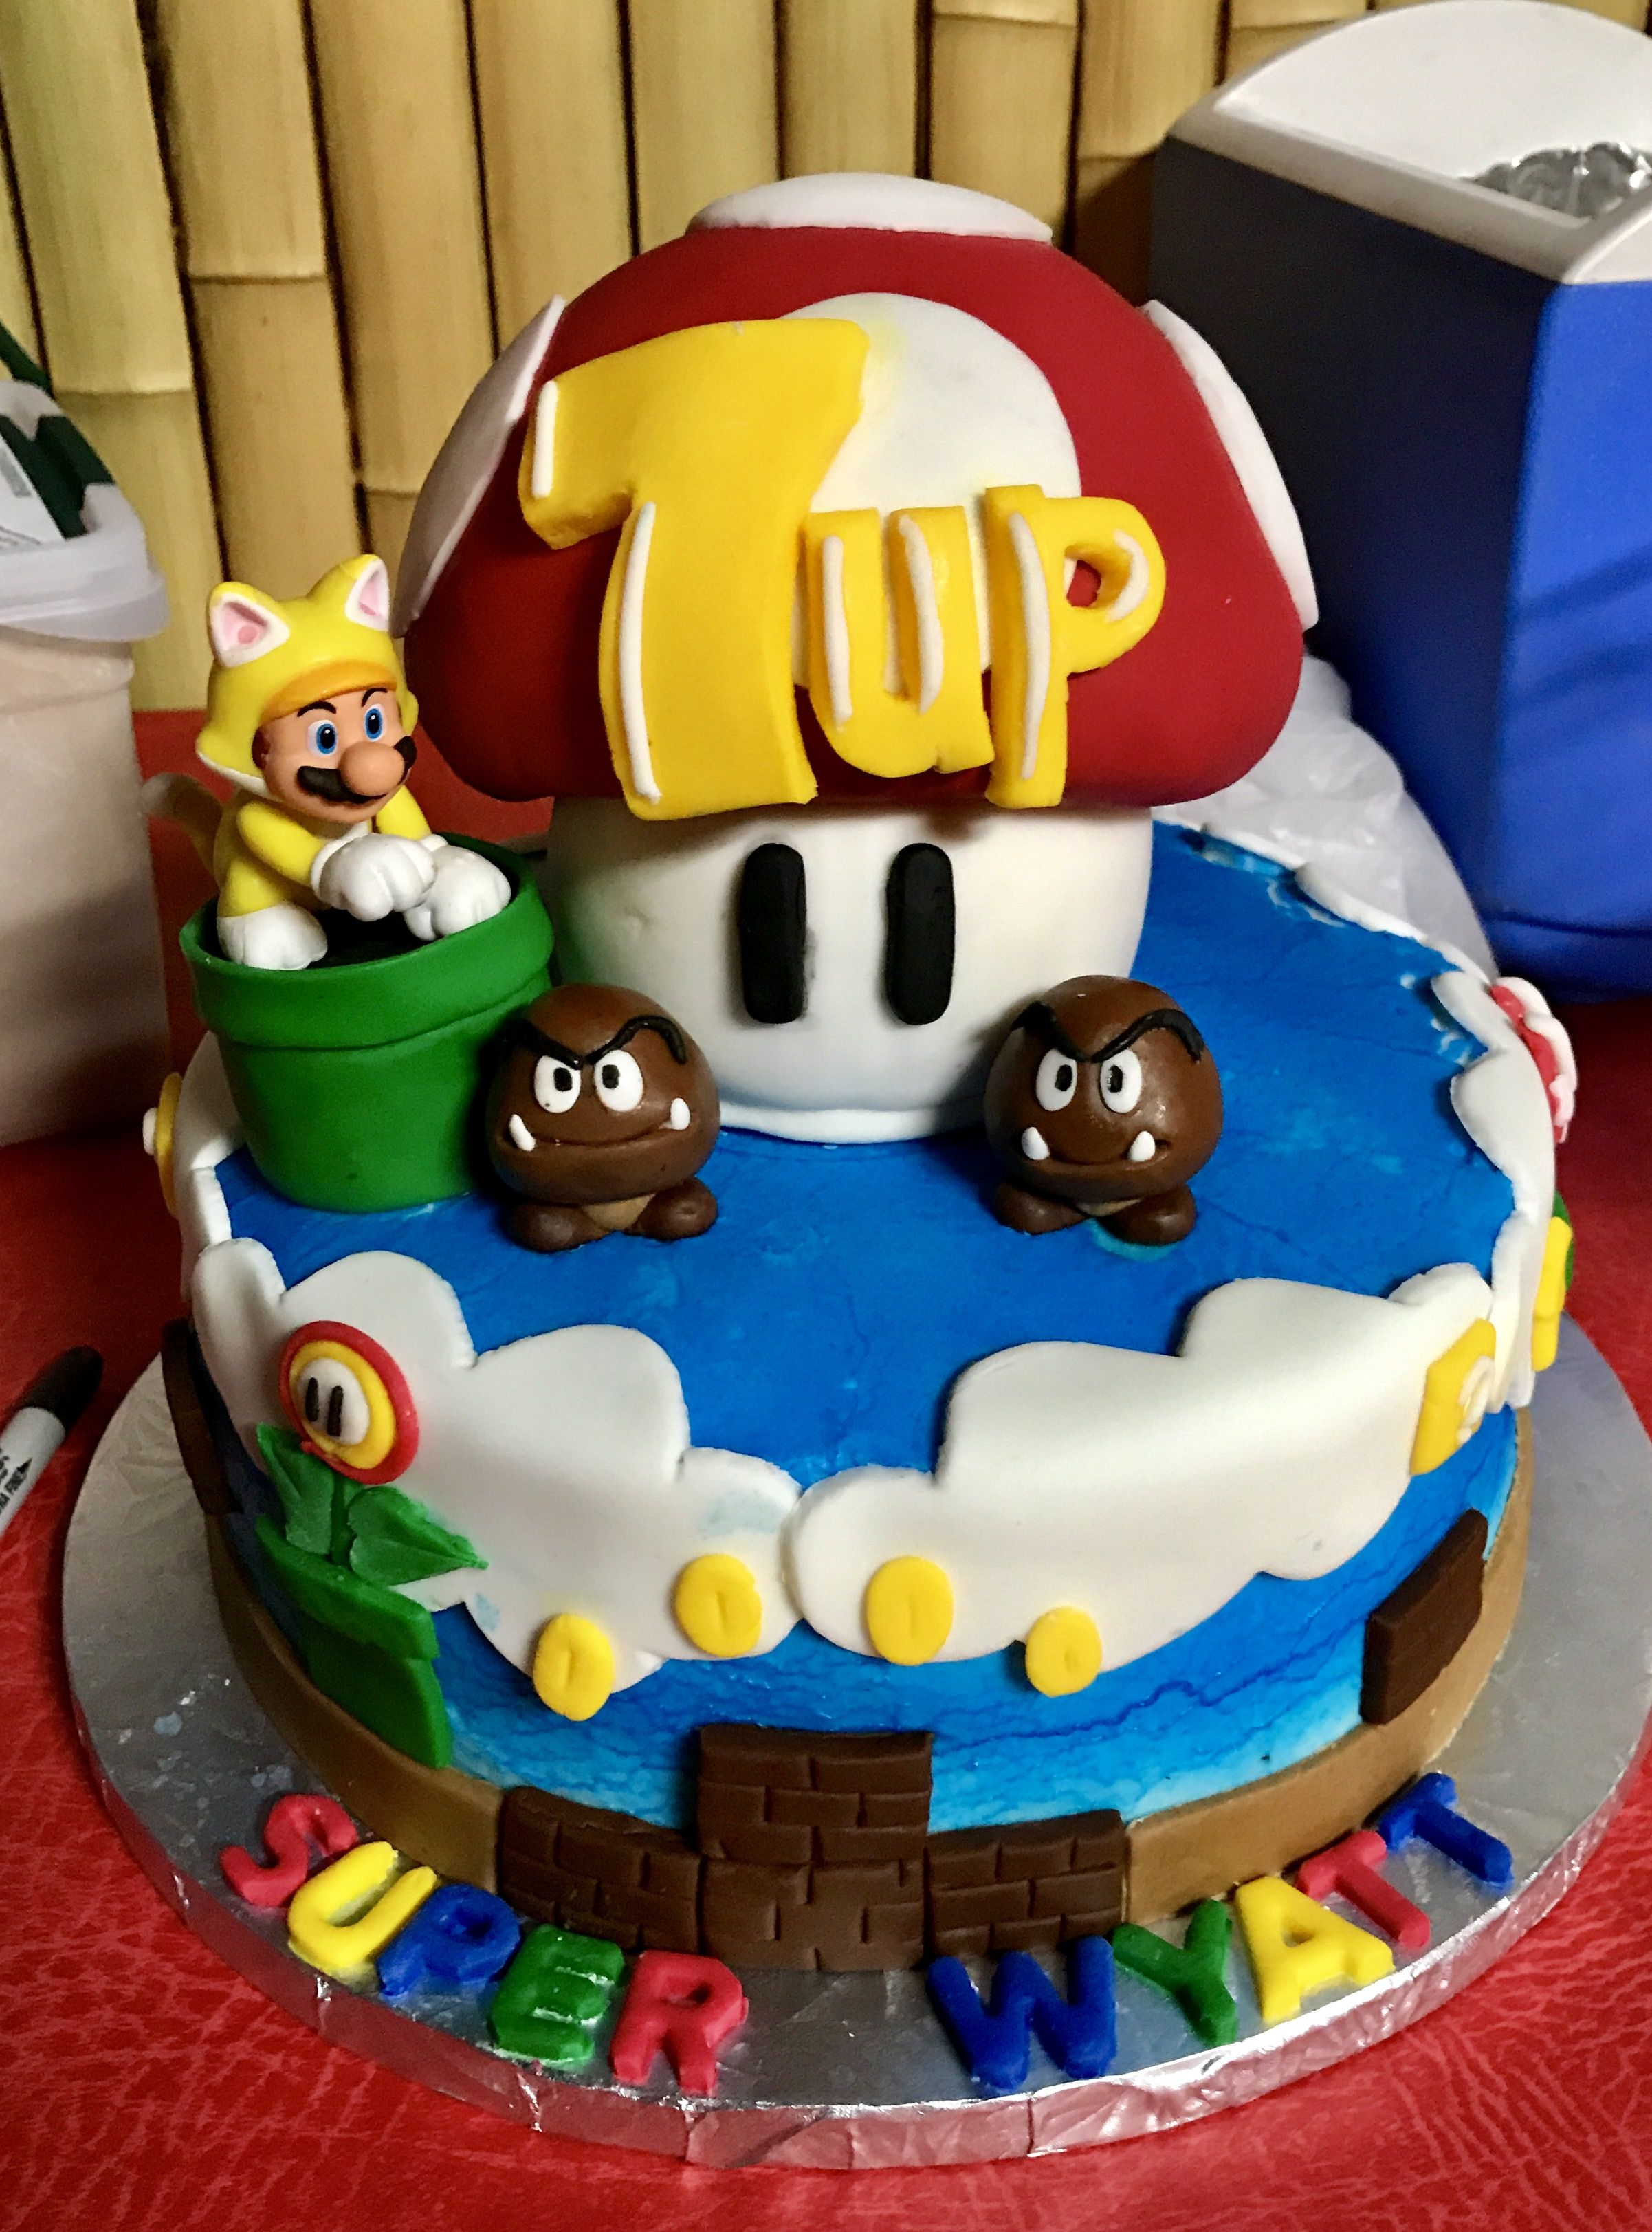 Marvelous Cake I Made For My Sons 7Th Birthday Mushroom Is A Giant Rice Personalised Birthday Cards Beptaeletsinfo